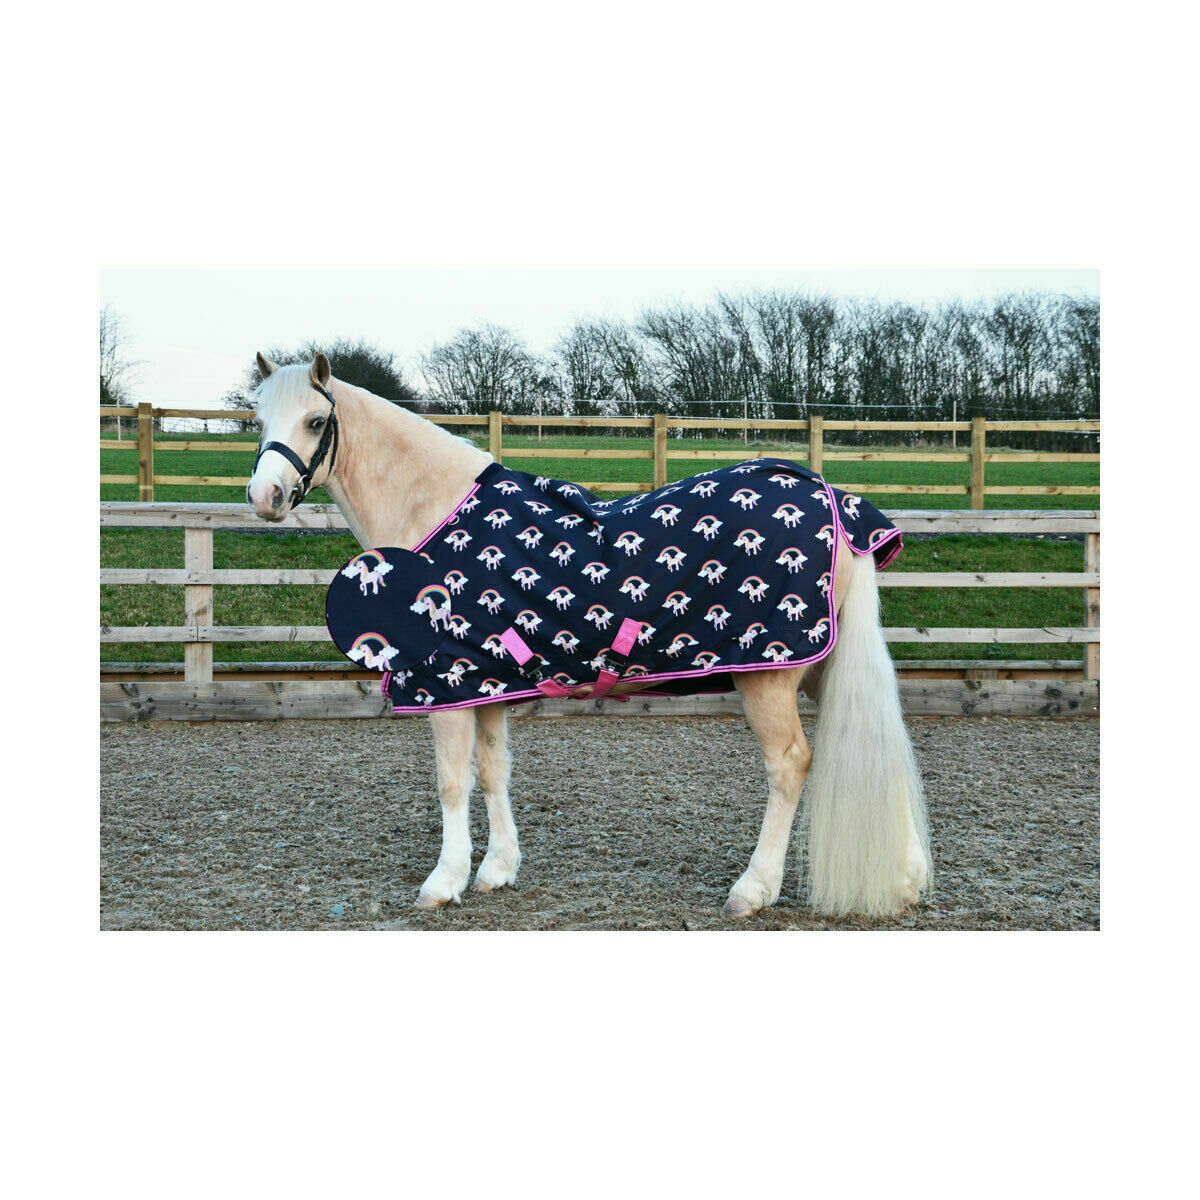 Hy Flamingo and Unicorn Lite weight turnout rugs, variety of sizes, UK seller